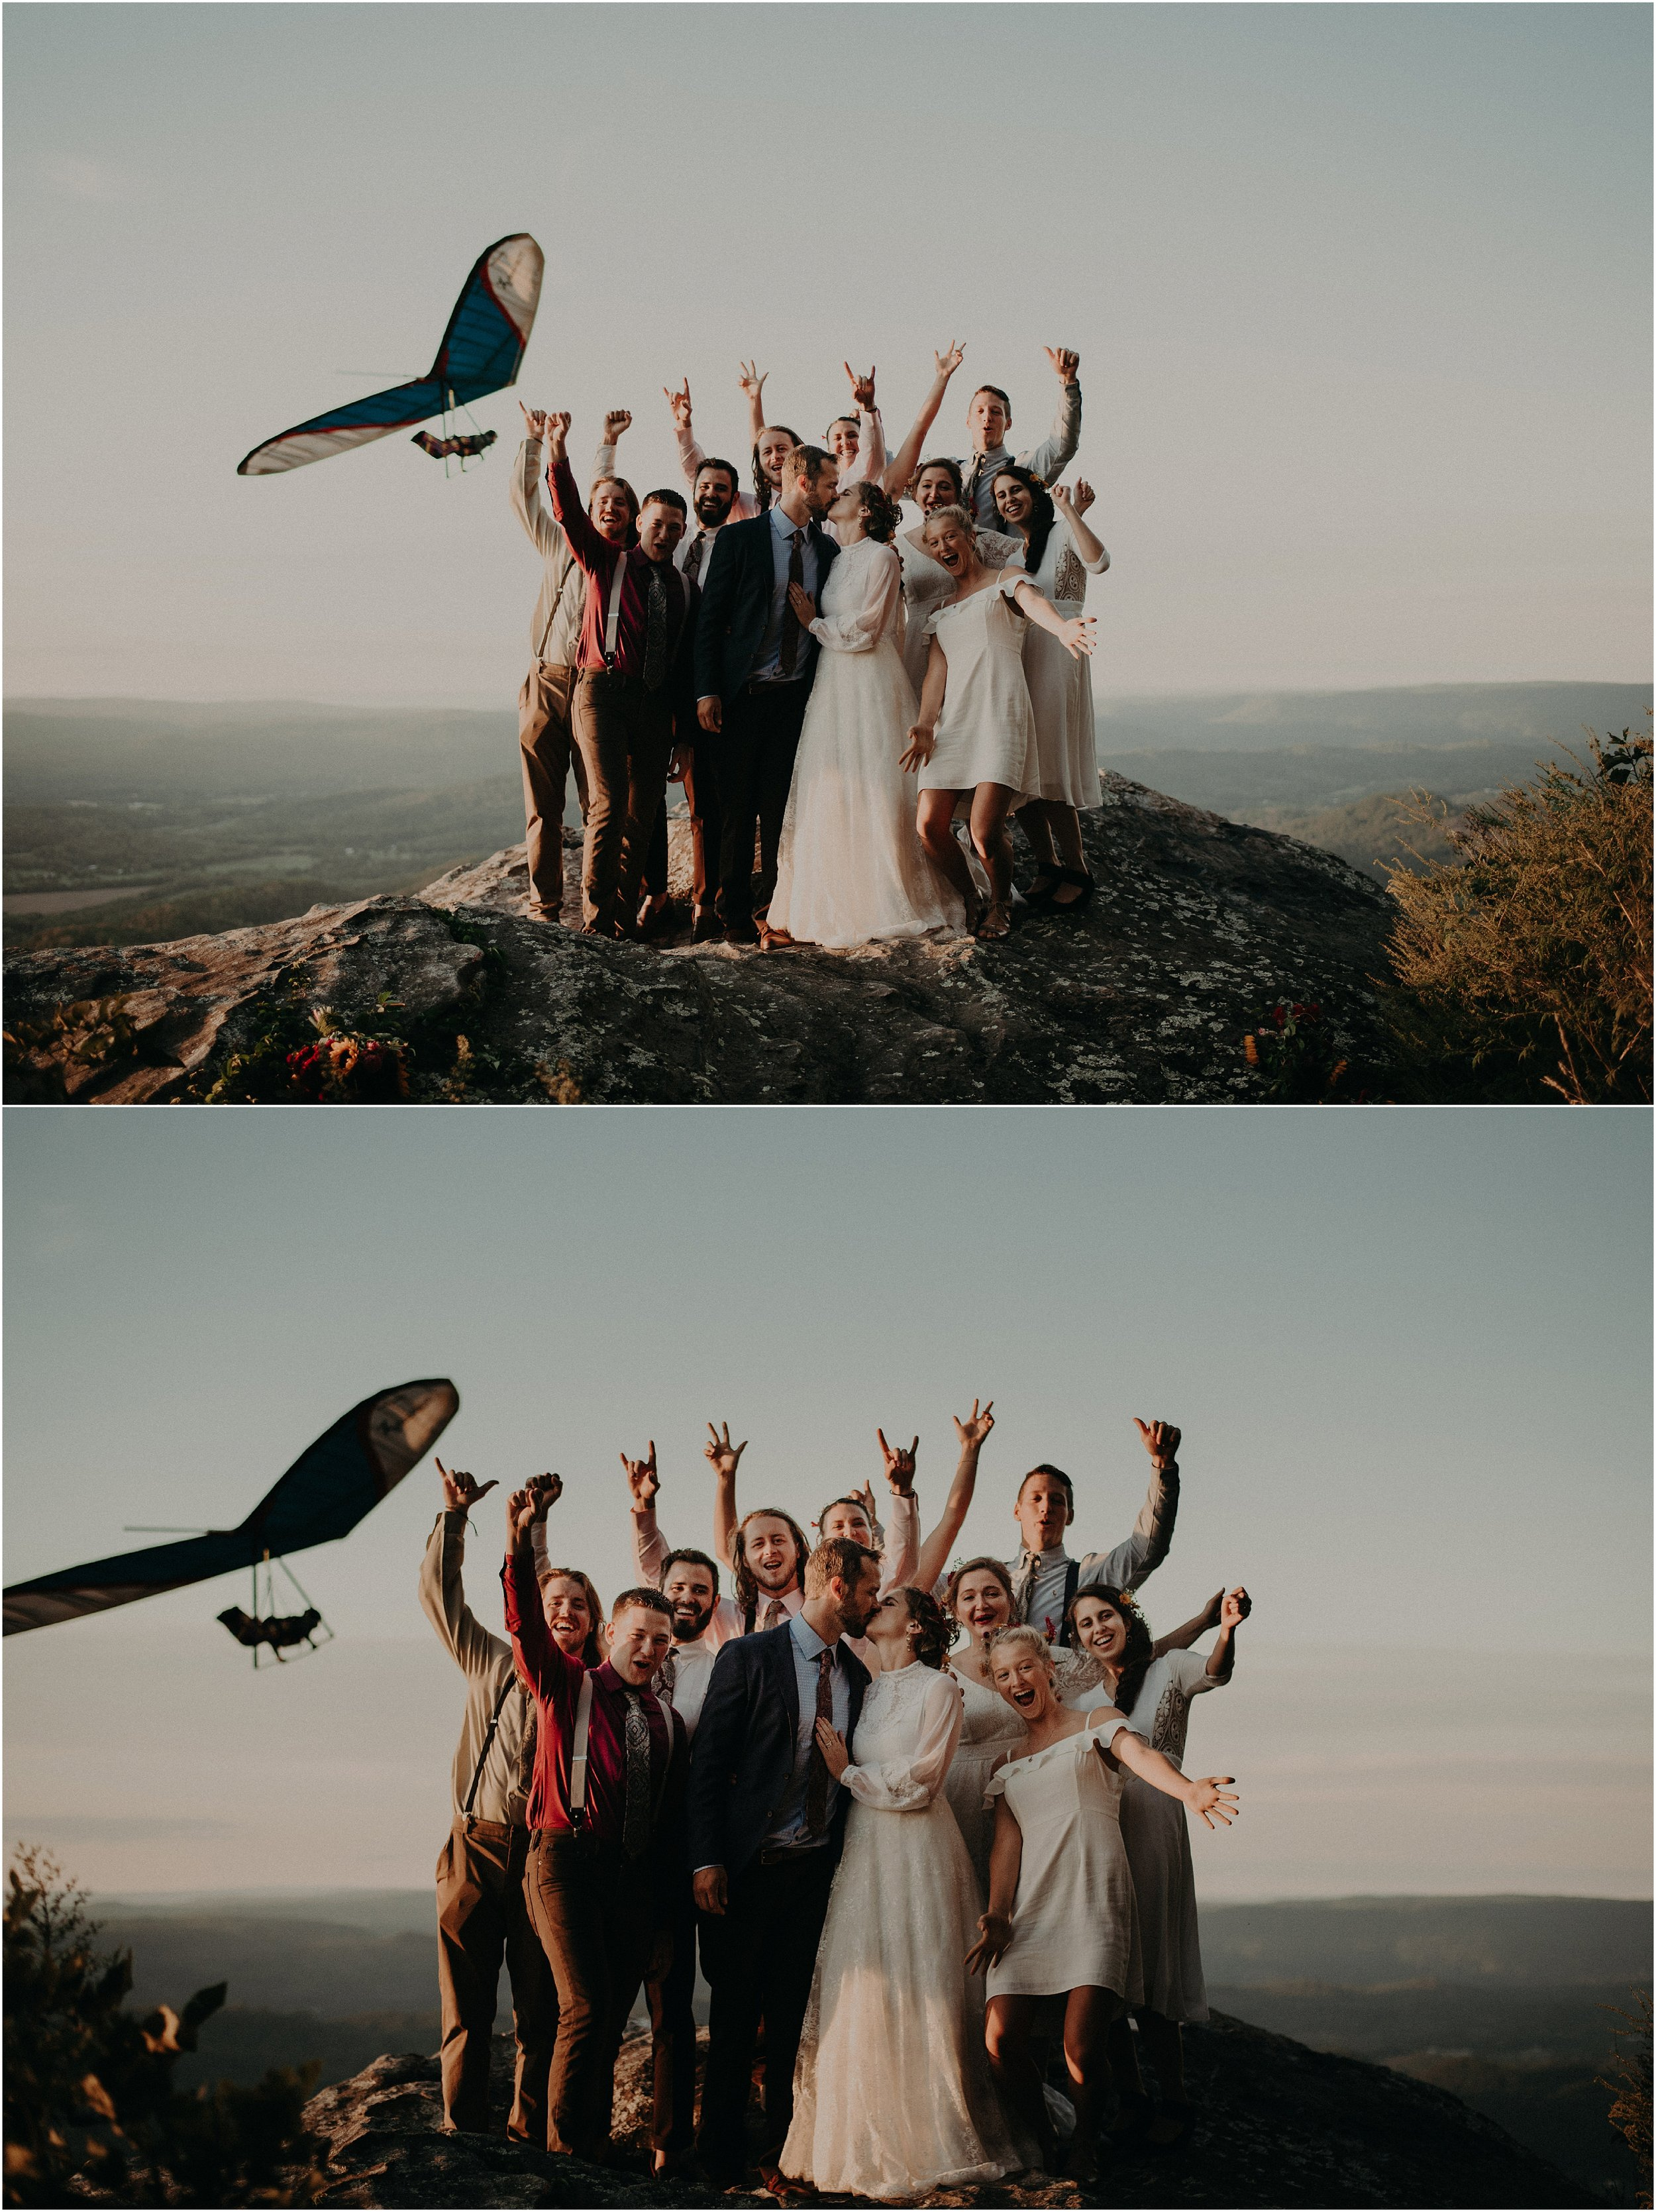 Adventurous hang-gliding wedding on Lookout Mountain, Georgia / Tennessee